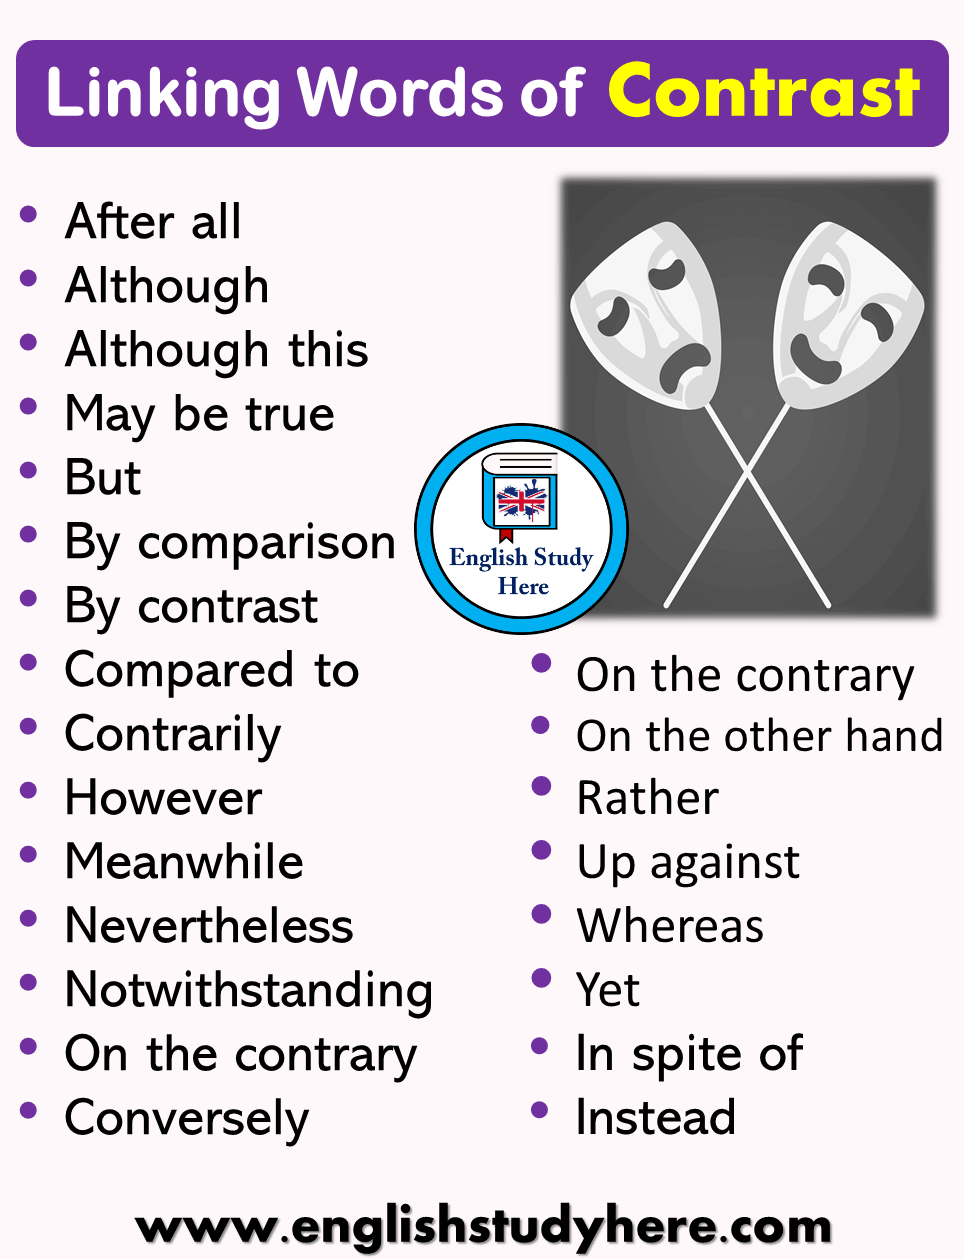 Linking Words of Contrast in English